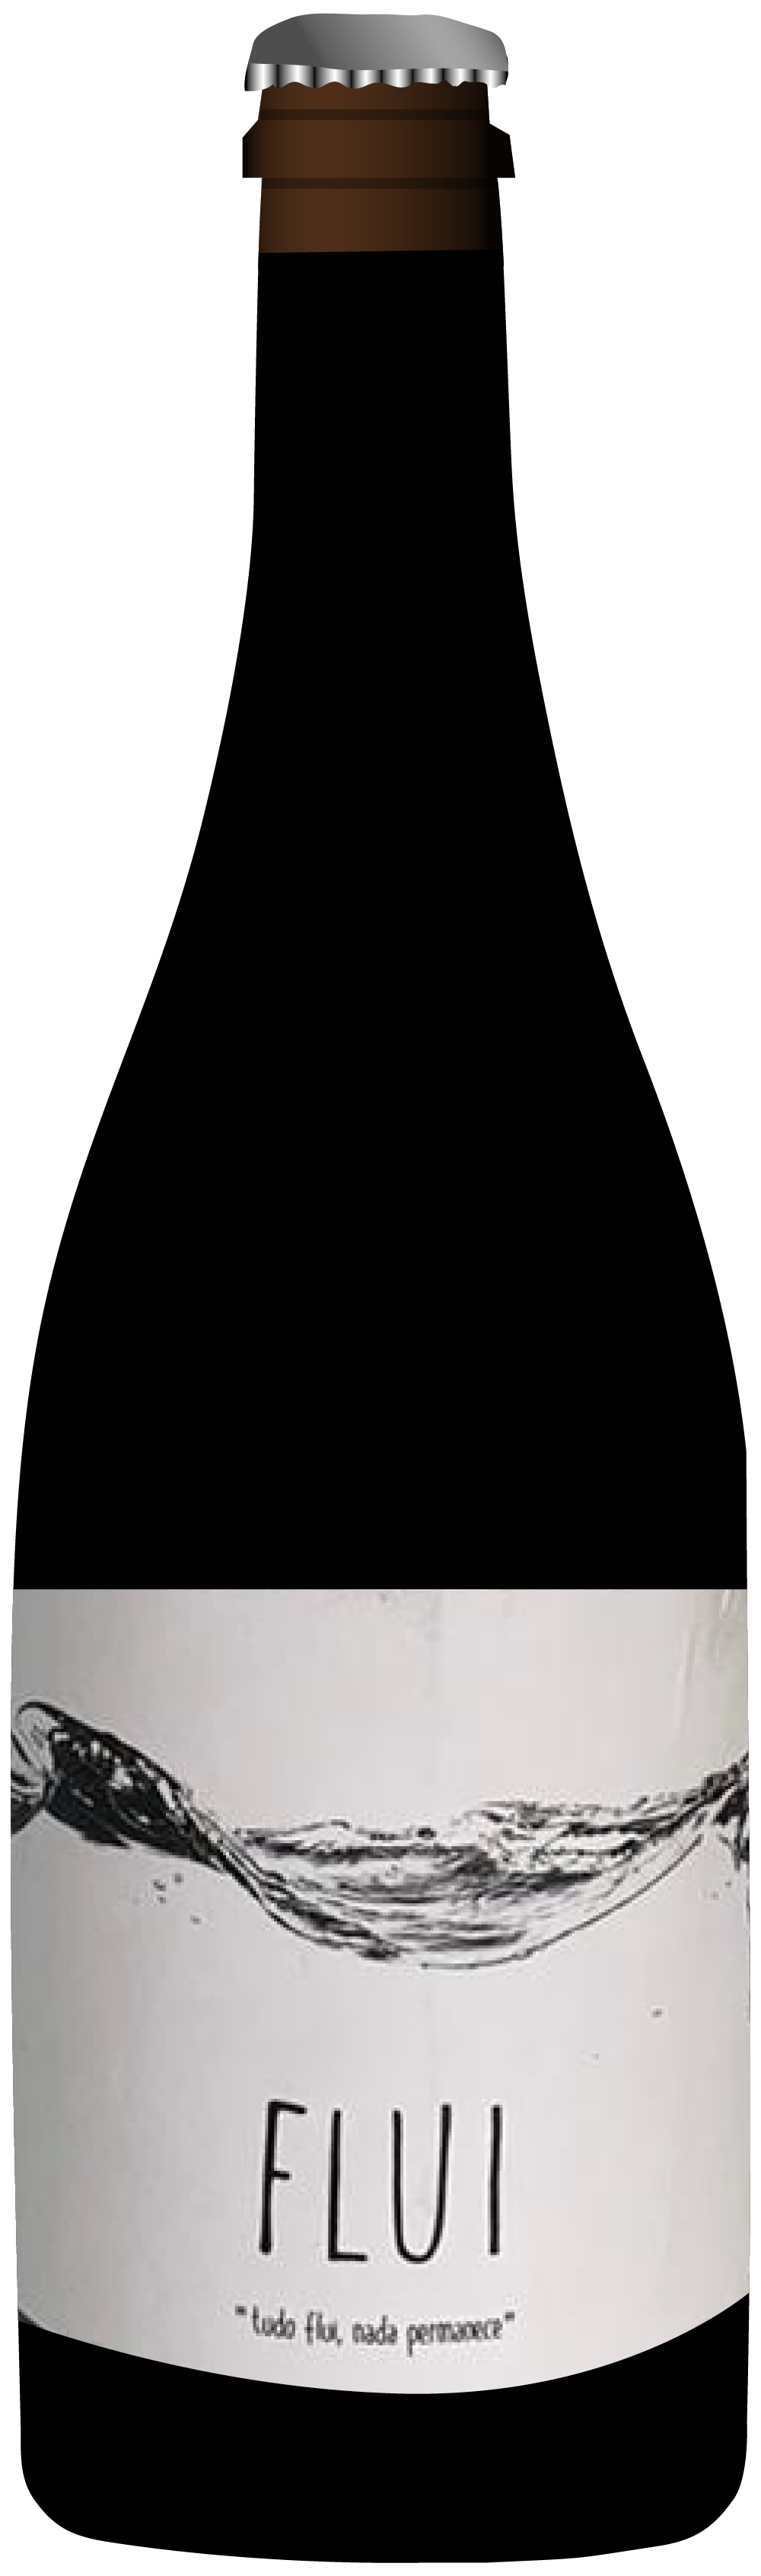 the natural wine company club march 2021 portugal flui pet nat